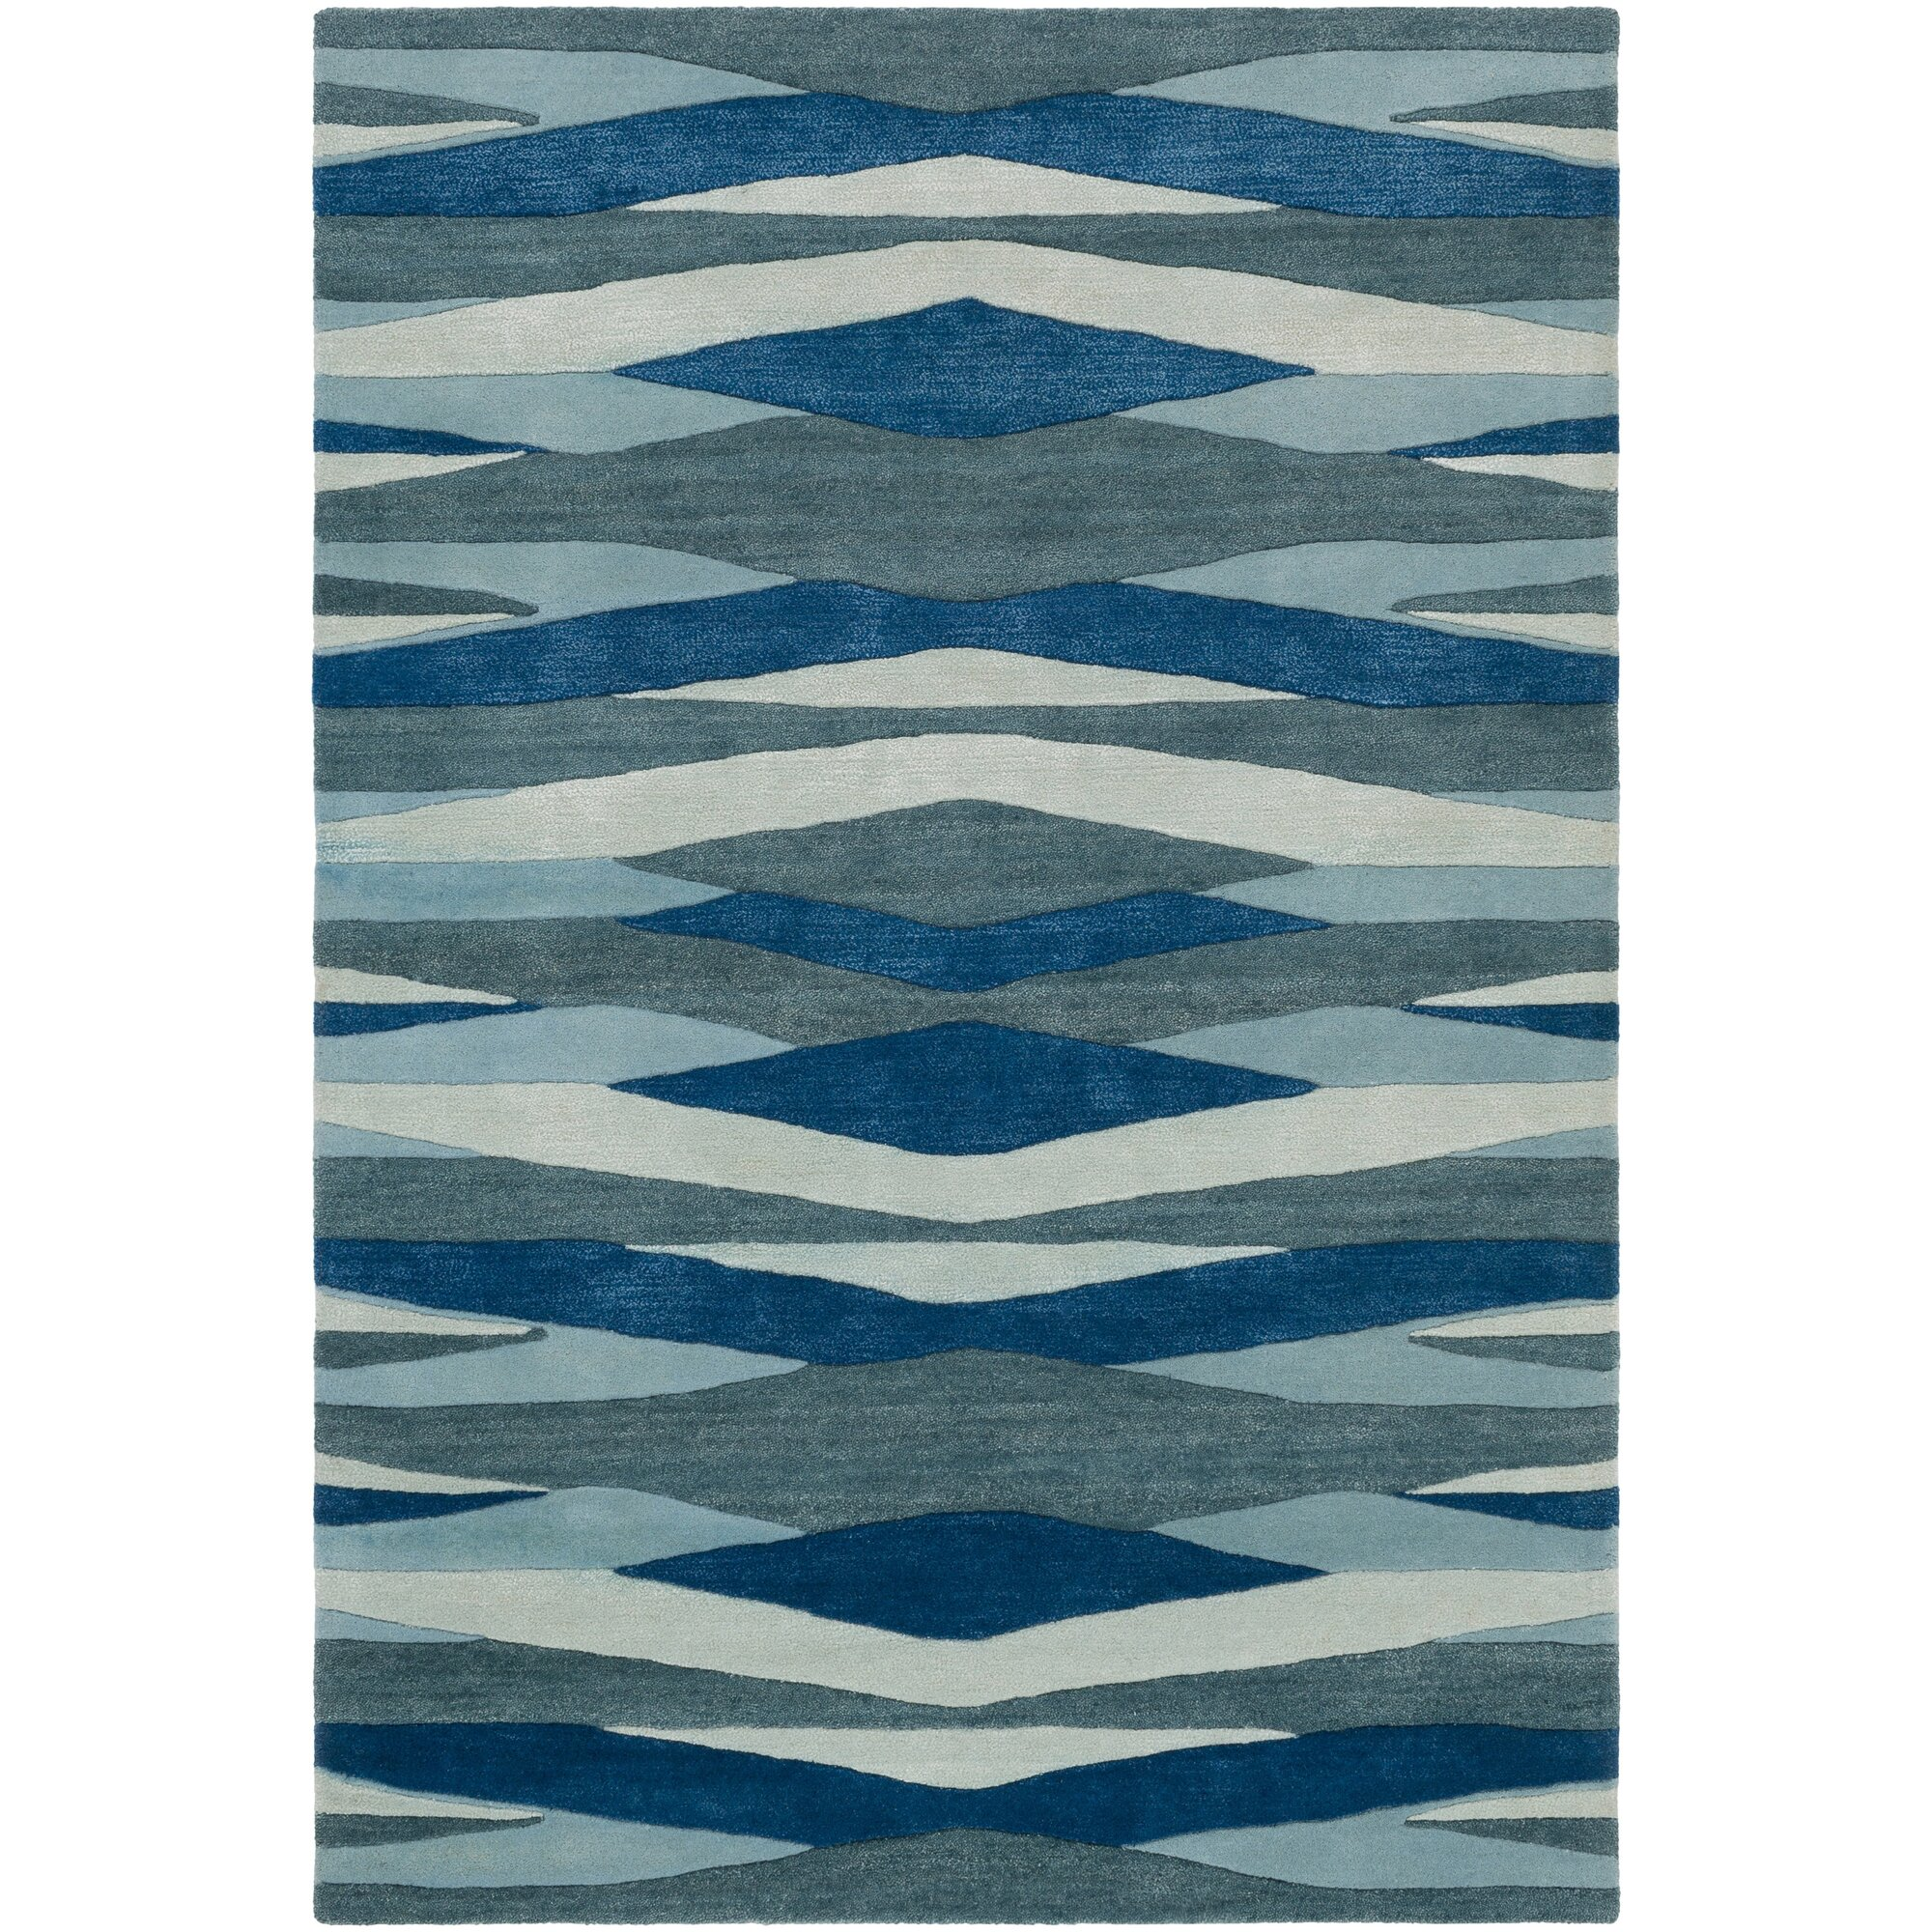 Stunning Dehart Handtufted Bright Blueteal Area Rug With Teal Area Rugs.